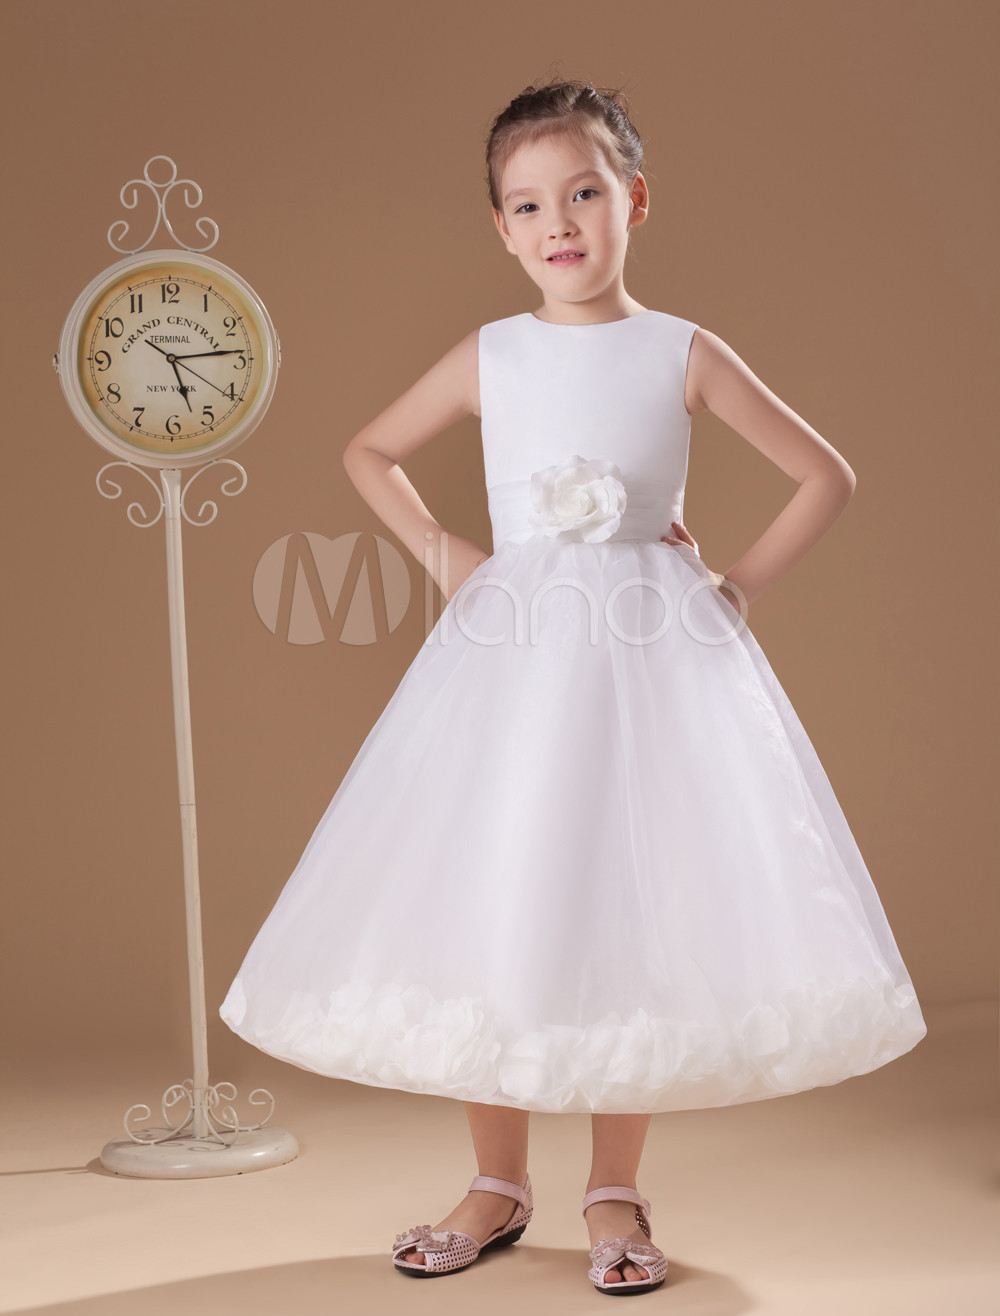 Pretty flower girl coupon codes gallery fresh lotus flowers flower girl dresses sposabridal clothing coupons find working promo codes or coupon code for july 2018 mightylinksfo